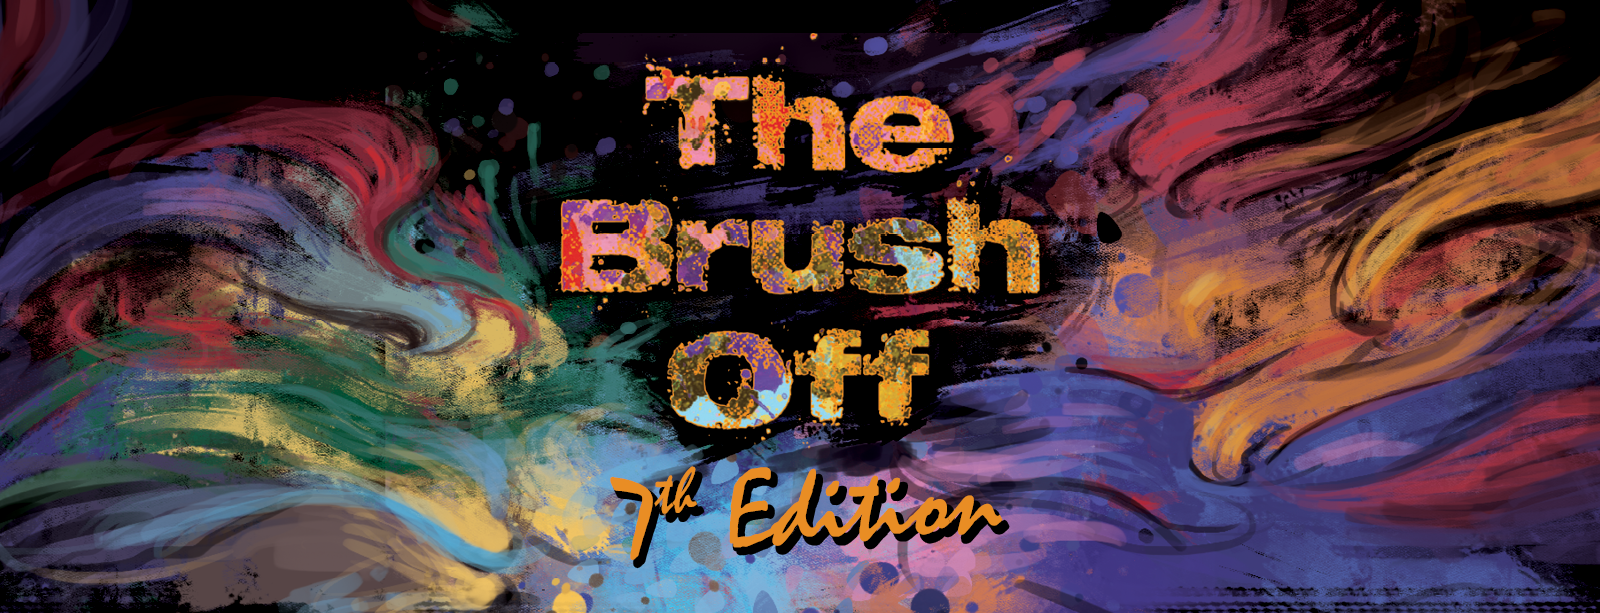 The Brush off: 7th Edition